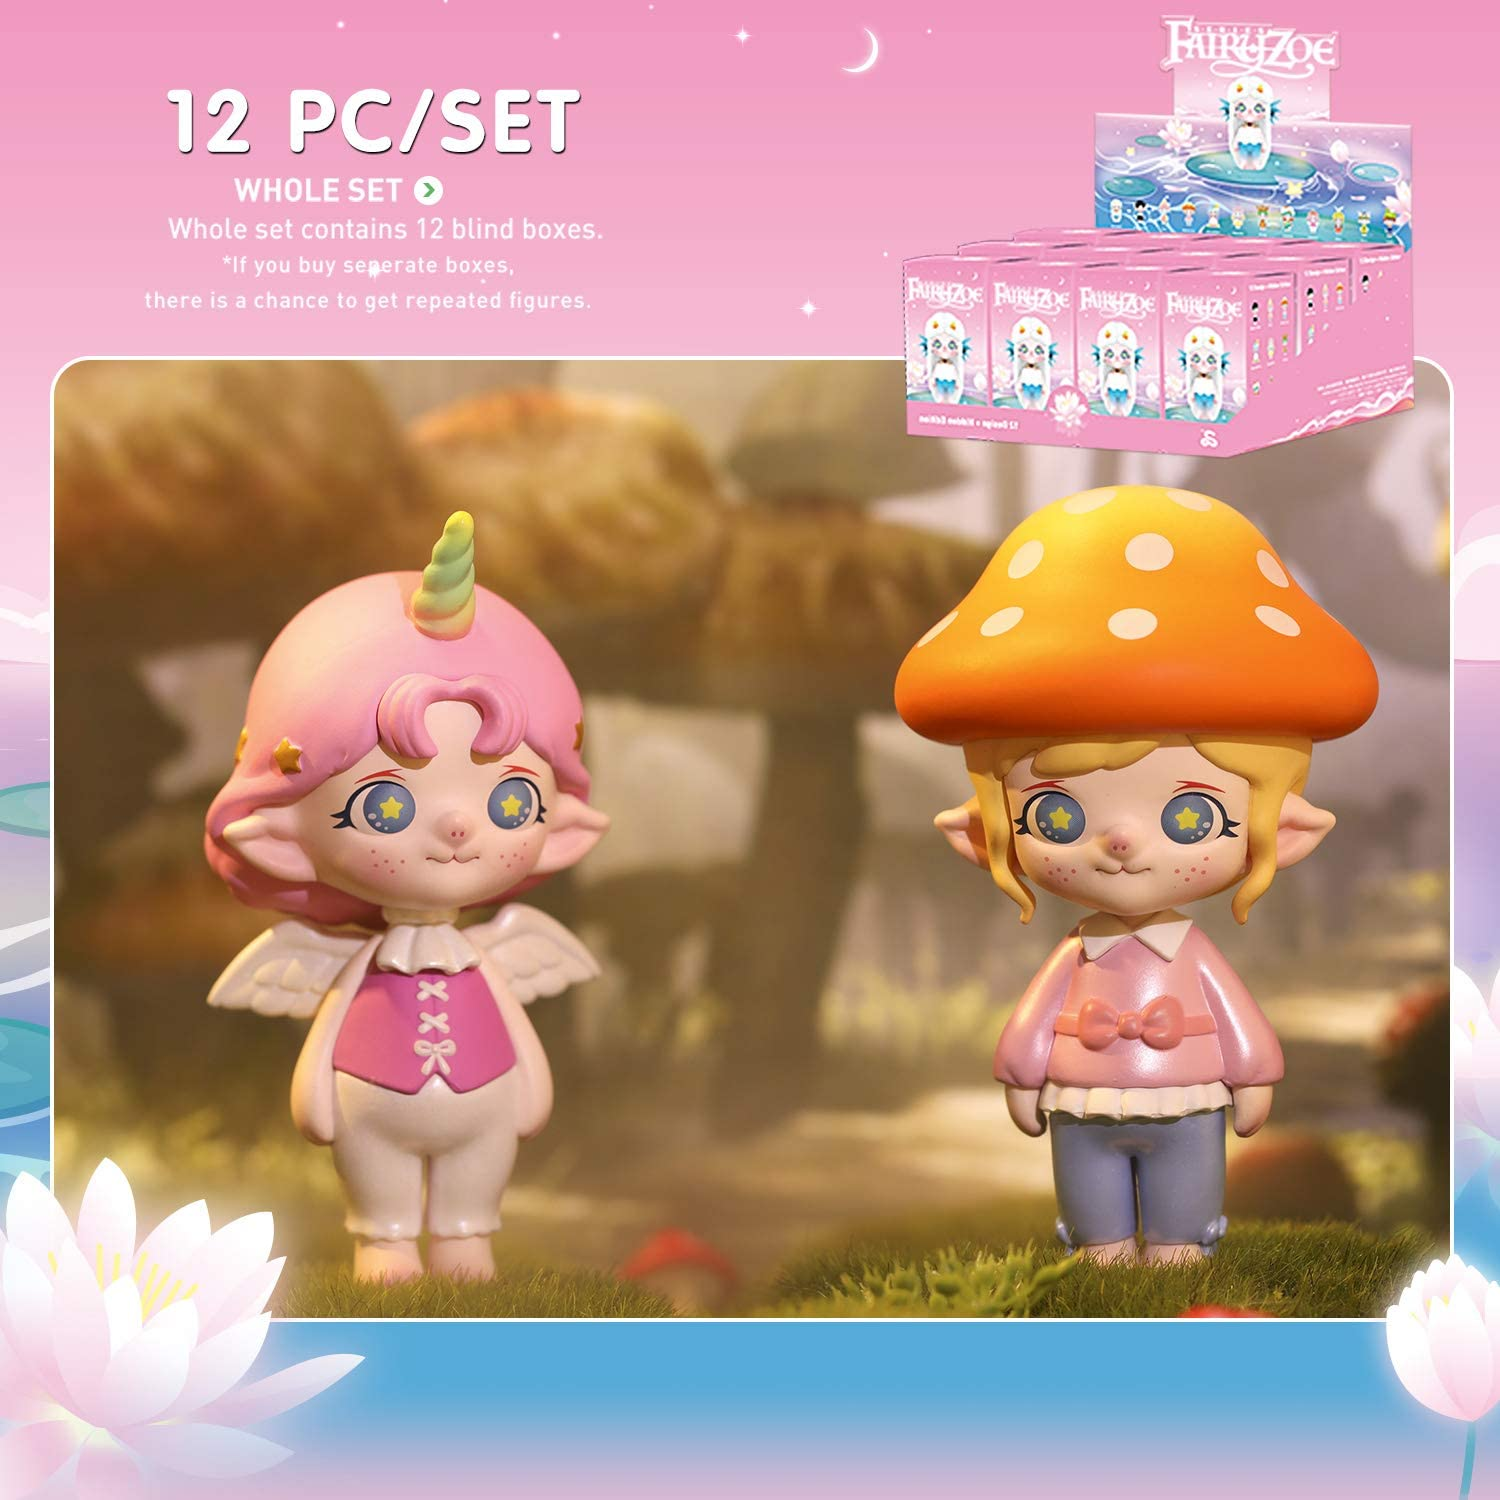 POP MART Fairy Zoe Series Collection Zodiac Art Toy Popular Collectible Cute Kawaii Toys Figures Blind Box Gift for Christmas Birthday Party Holiday-12 PCS//Set